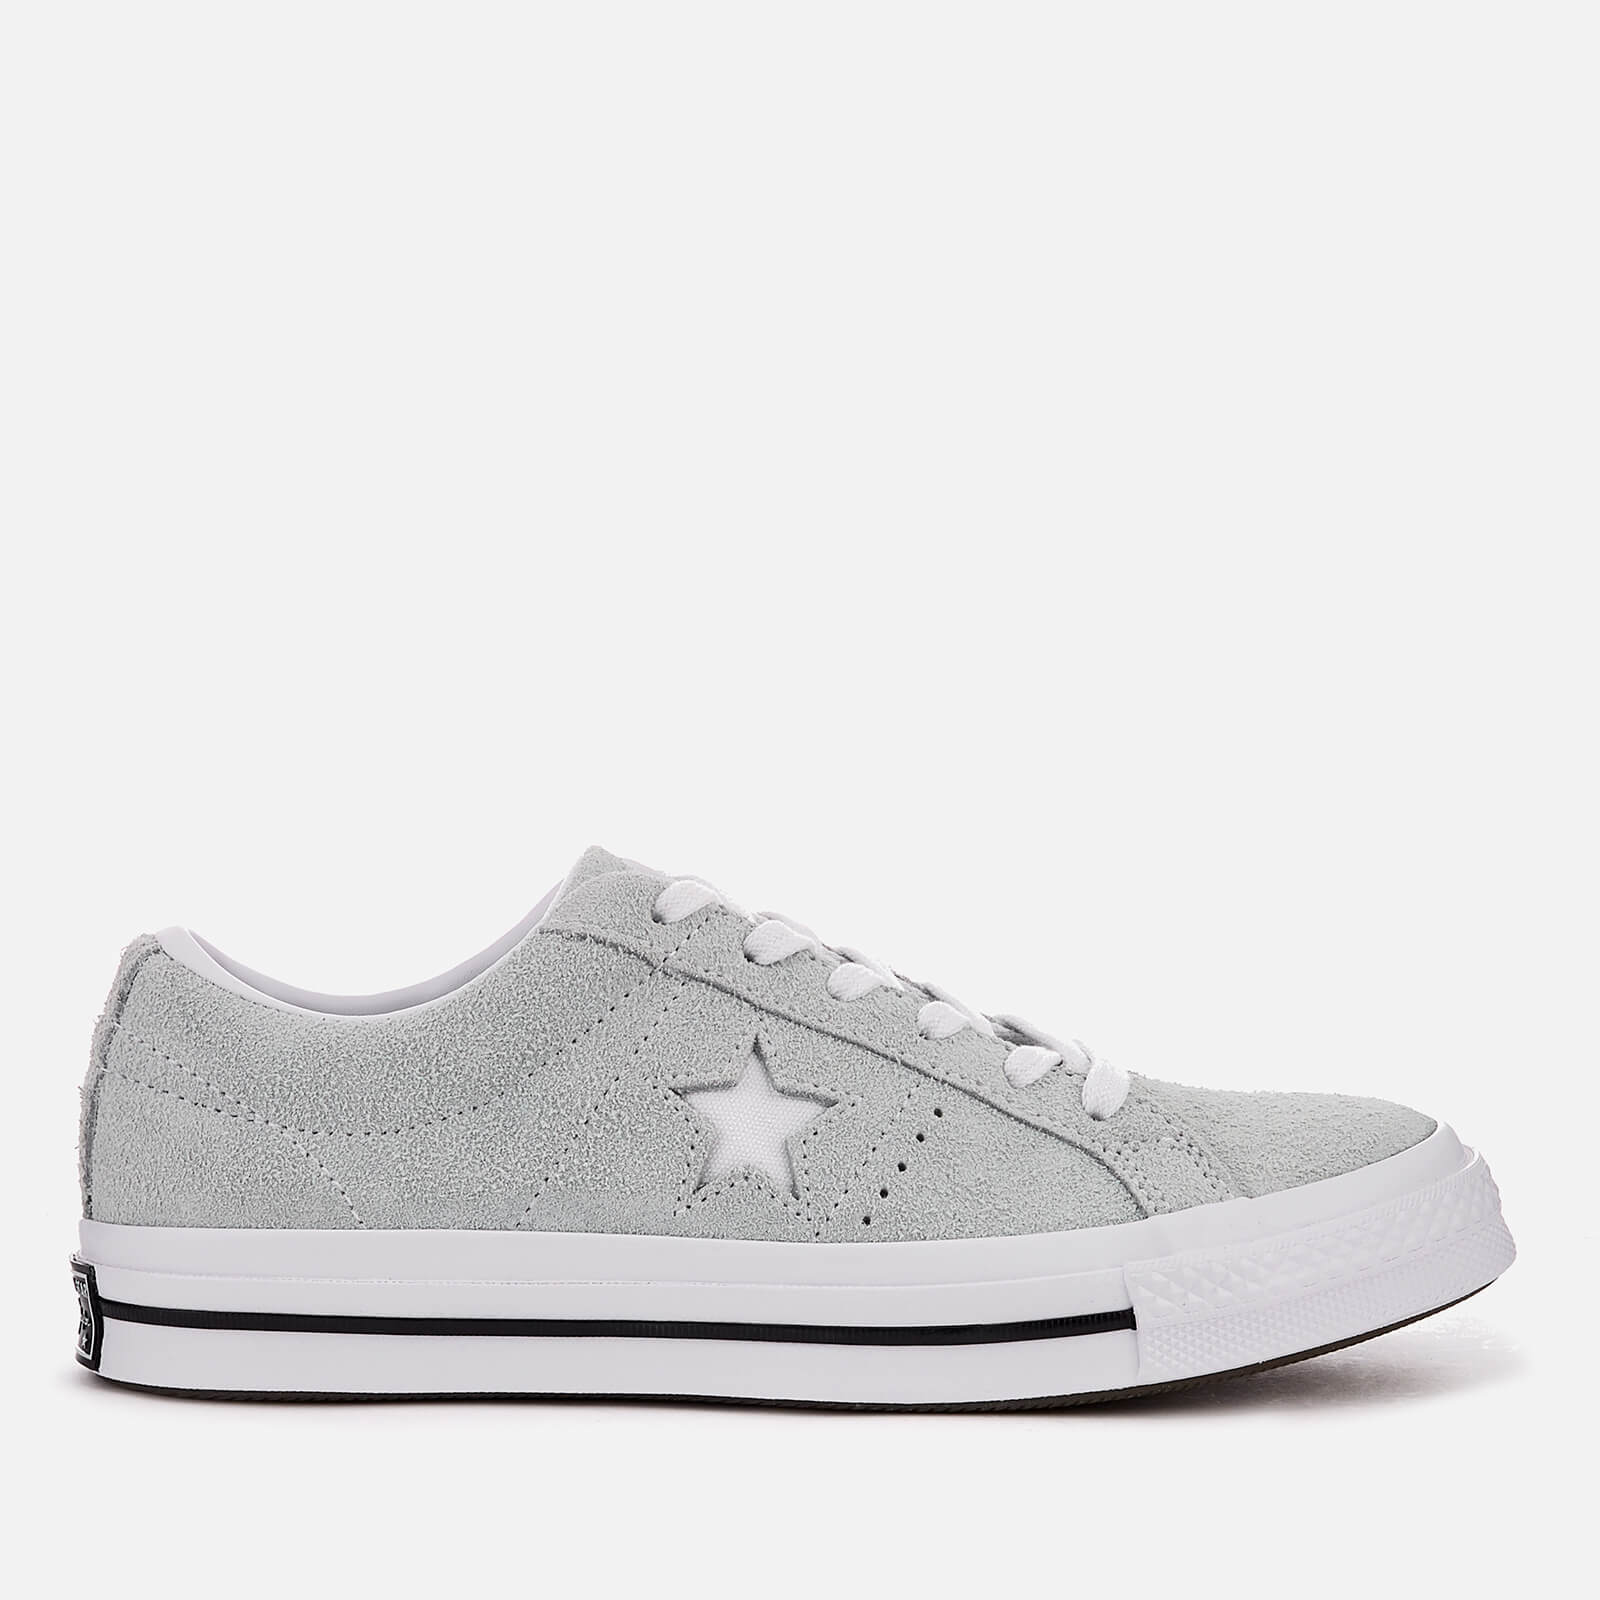 07b16ed41c40 Converse One Star Ox Trainers - Dried Bamboo White Black Mens Footwear